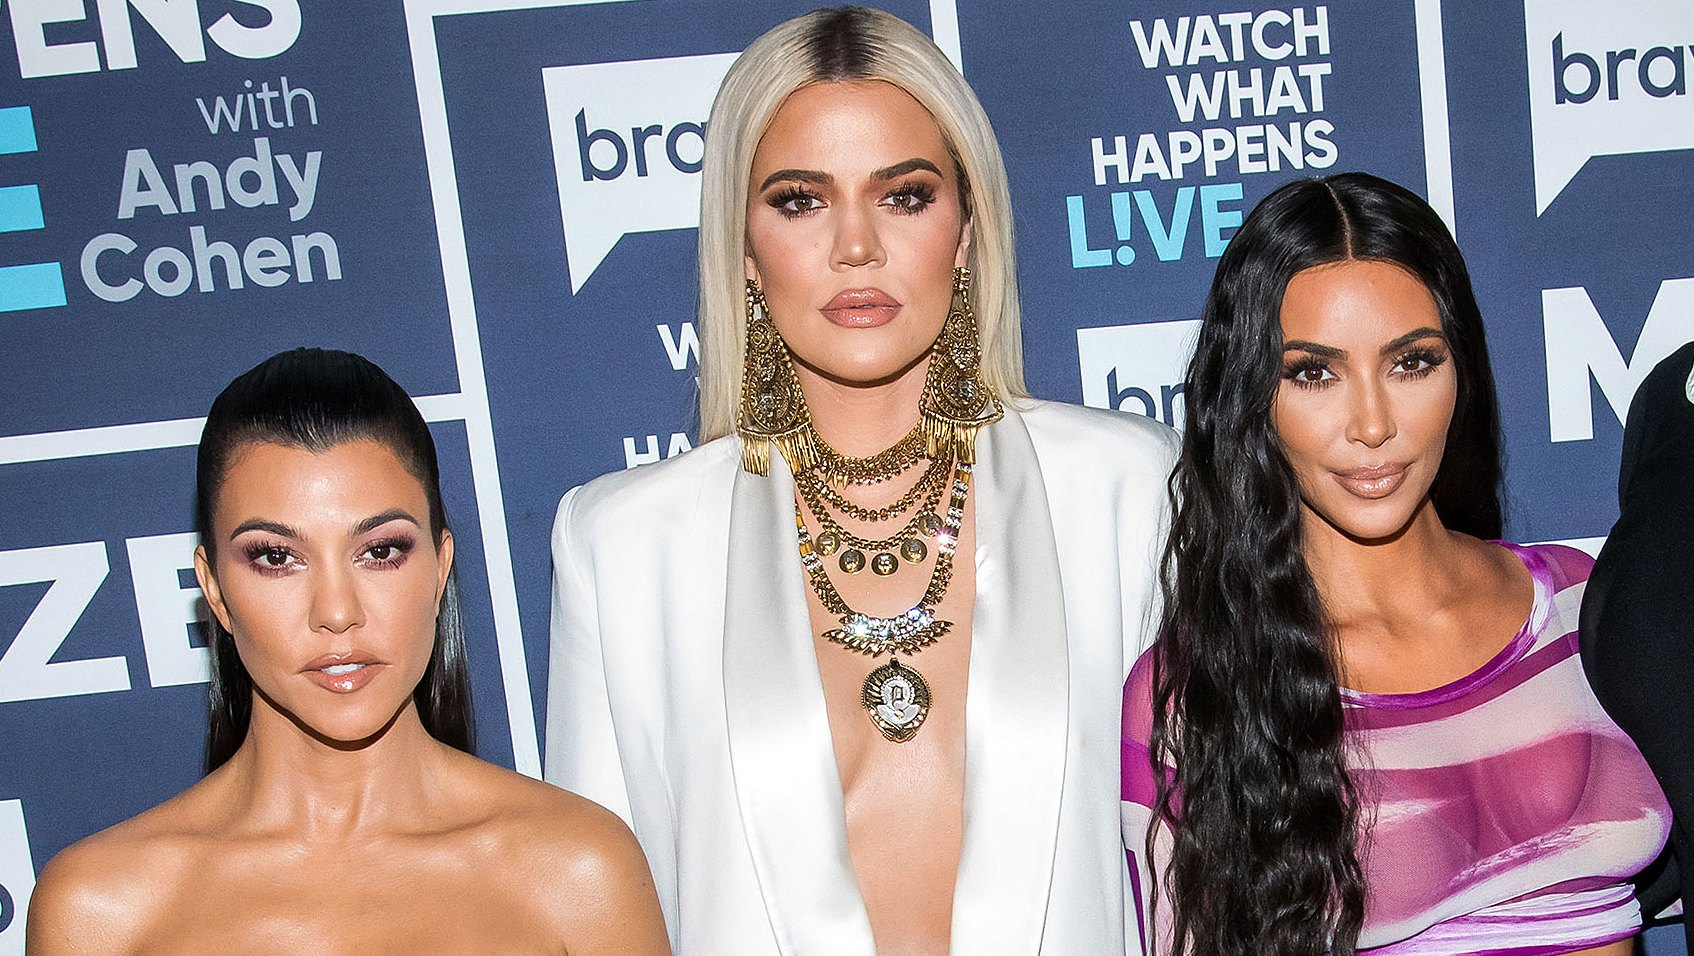 Khloe Kardashian Heads to Church With Kim, Kourtney, Kanye West and Kendall Jenner After Slamming Ex Tristan Thompson